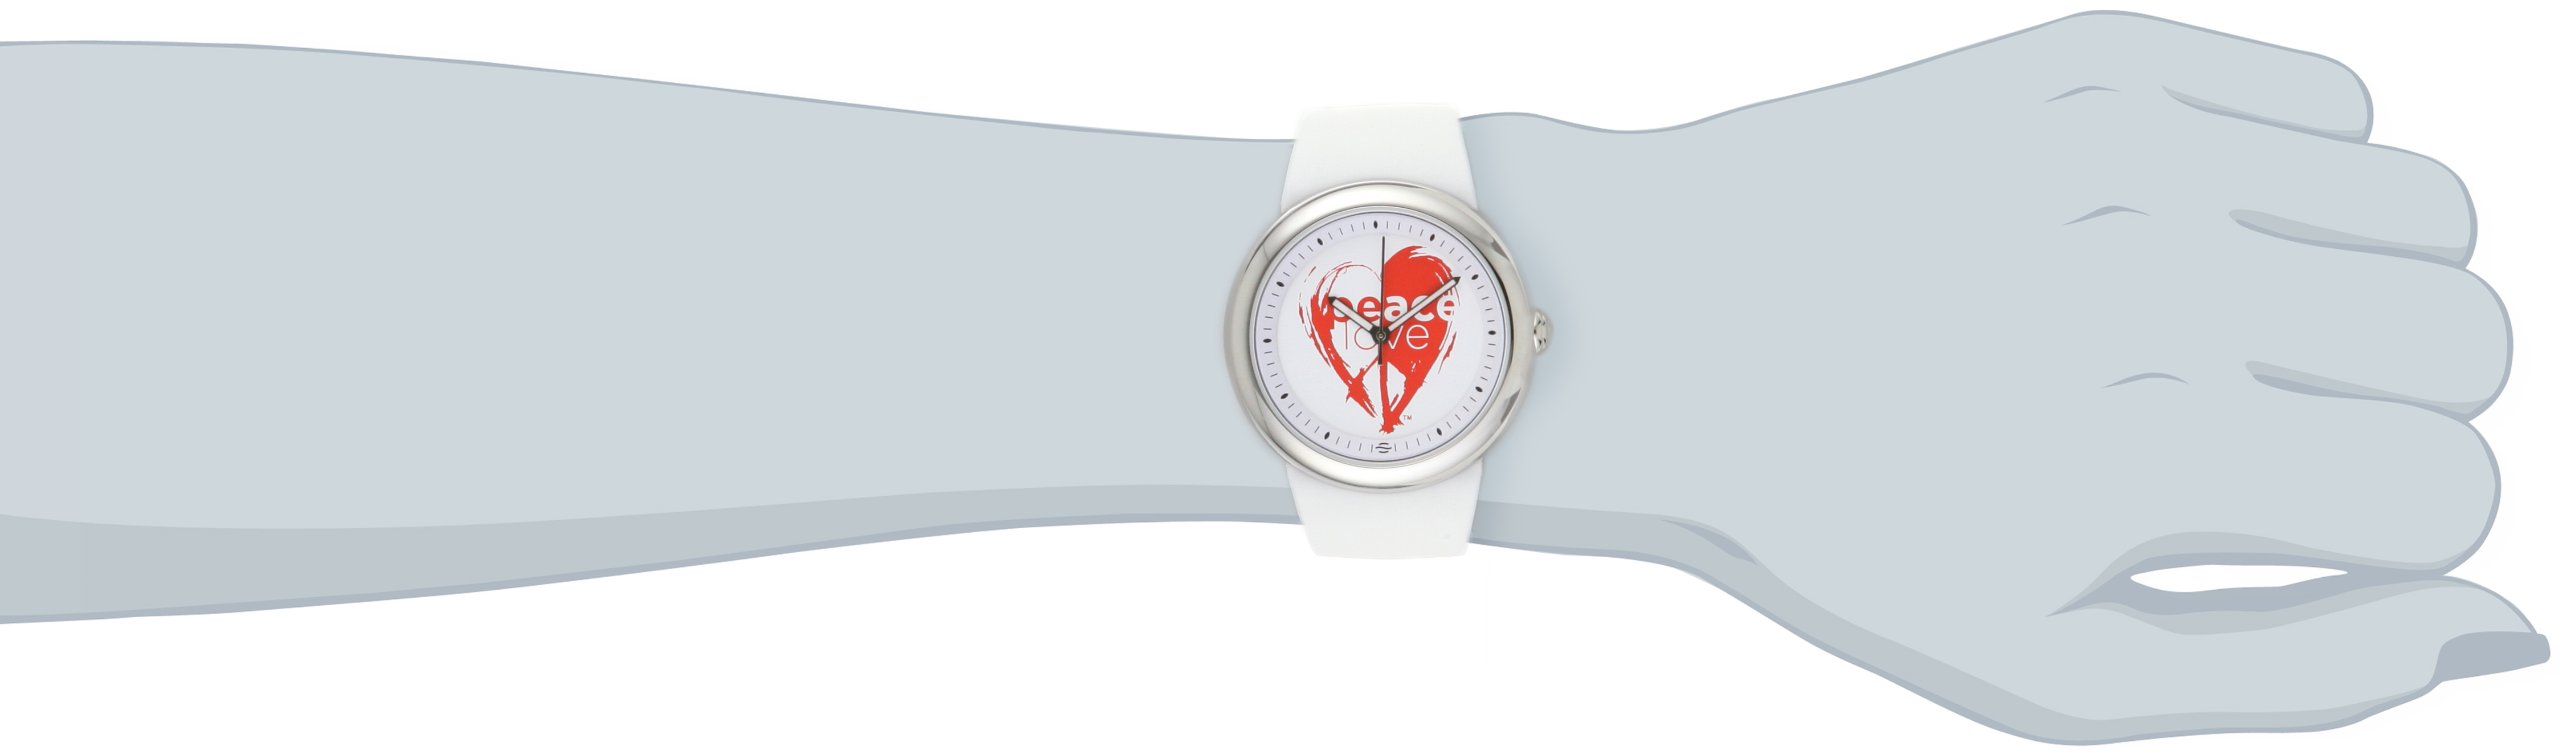 PeaceLove Unisex F36S-PL-W ''Sparr'' Art Dial Stainless Steel Watch by Love & Peace (Image #2)